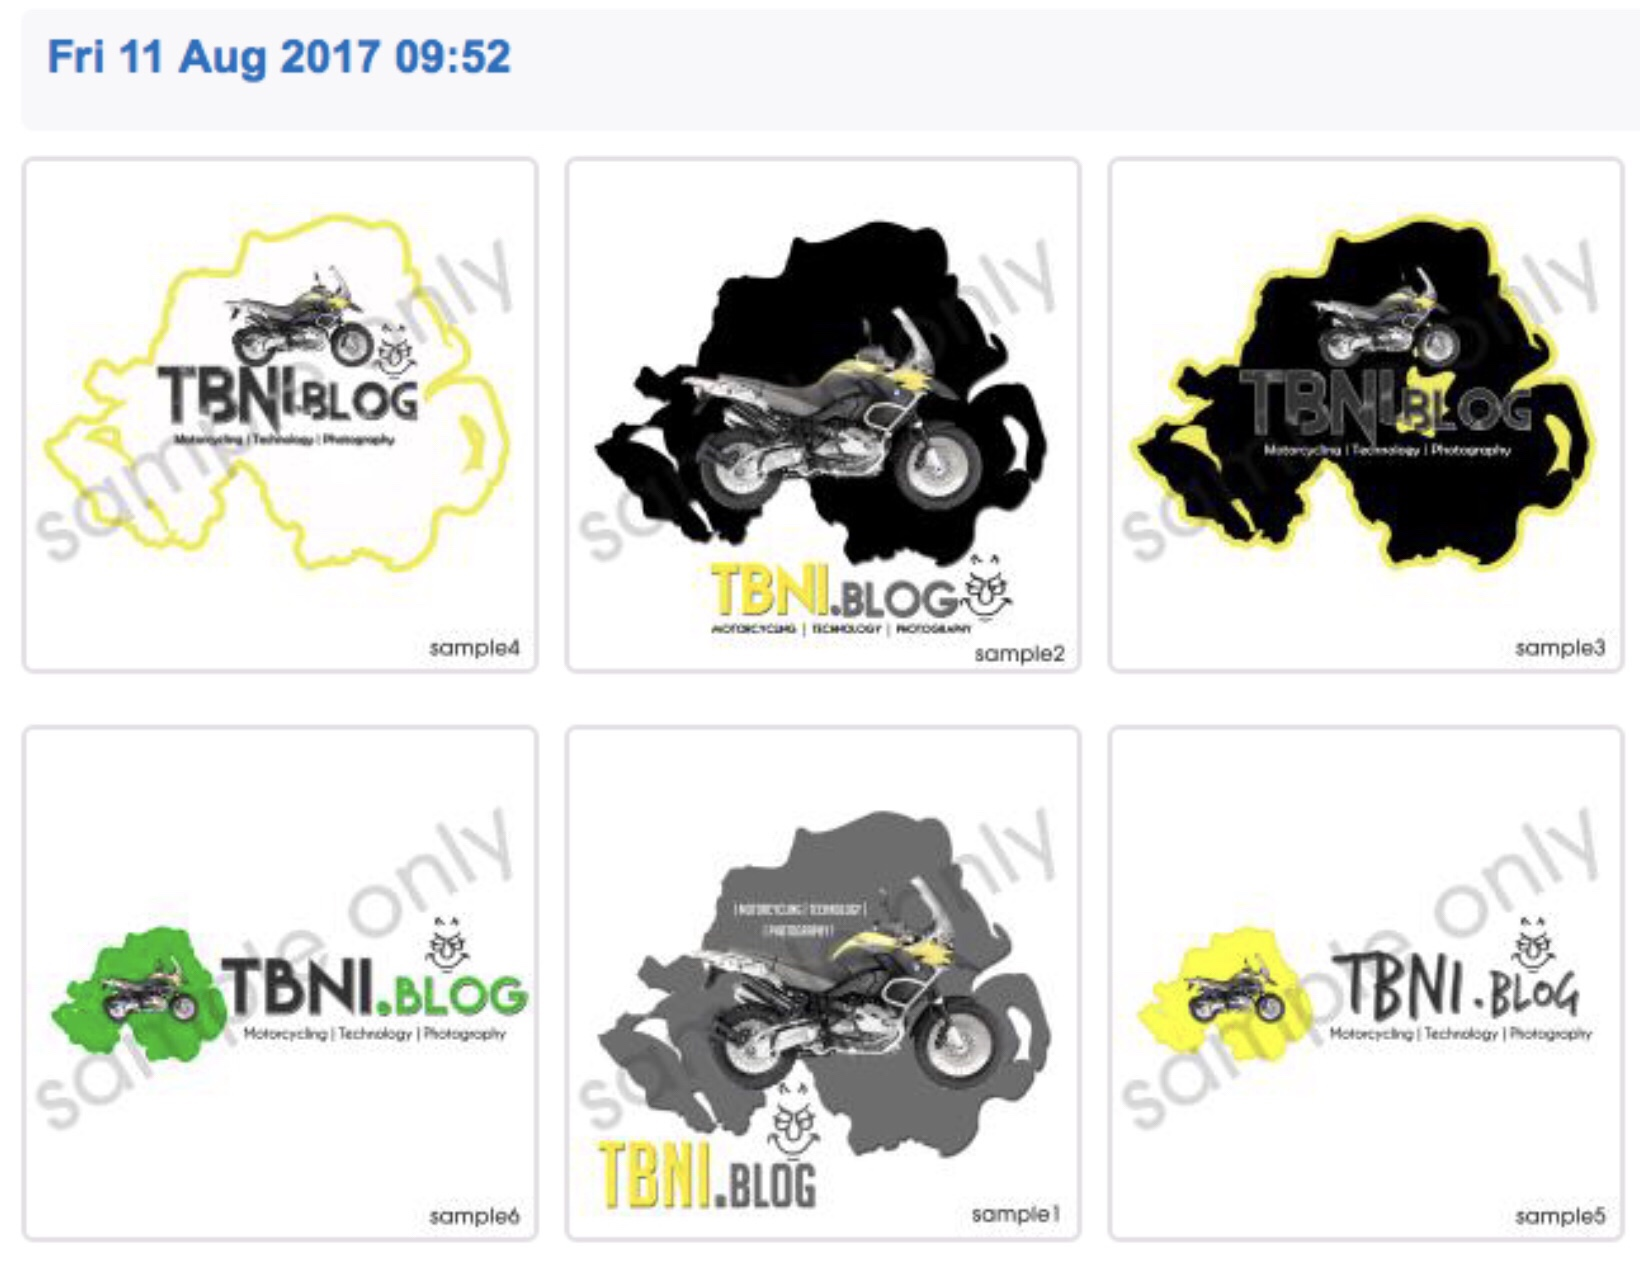 The Second Pathetic Set of Logos Offered - Allegedly The Senior Design Team Worked on these